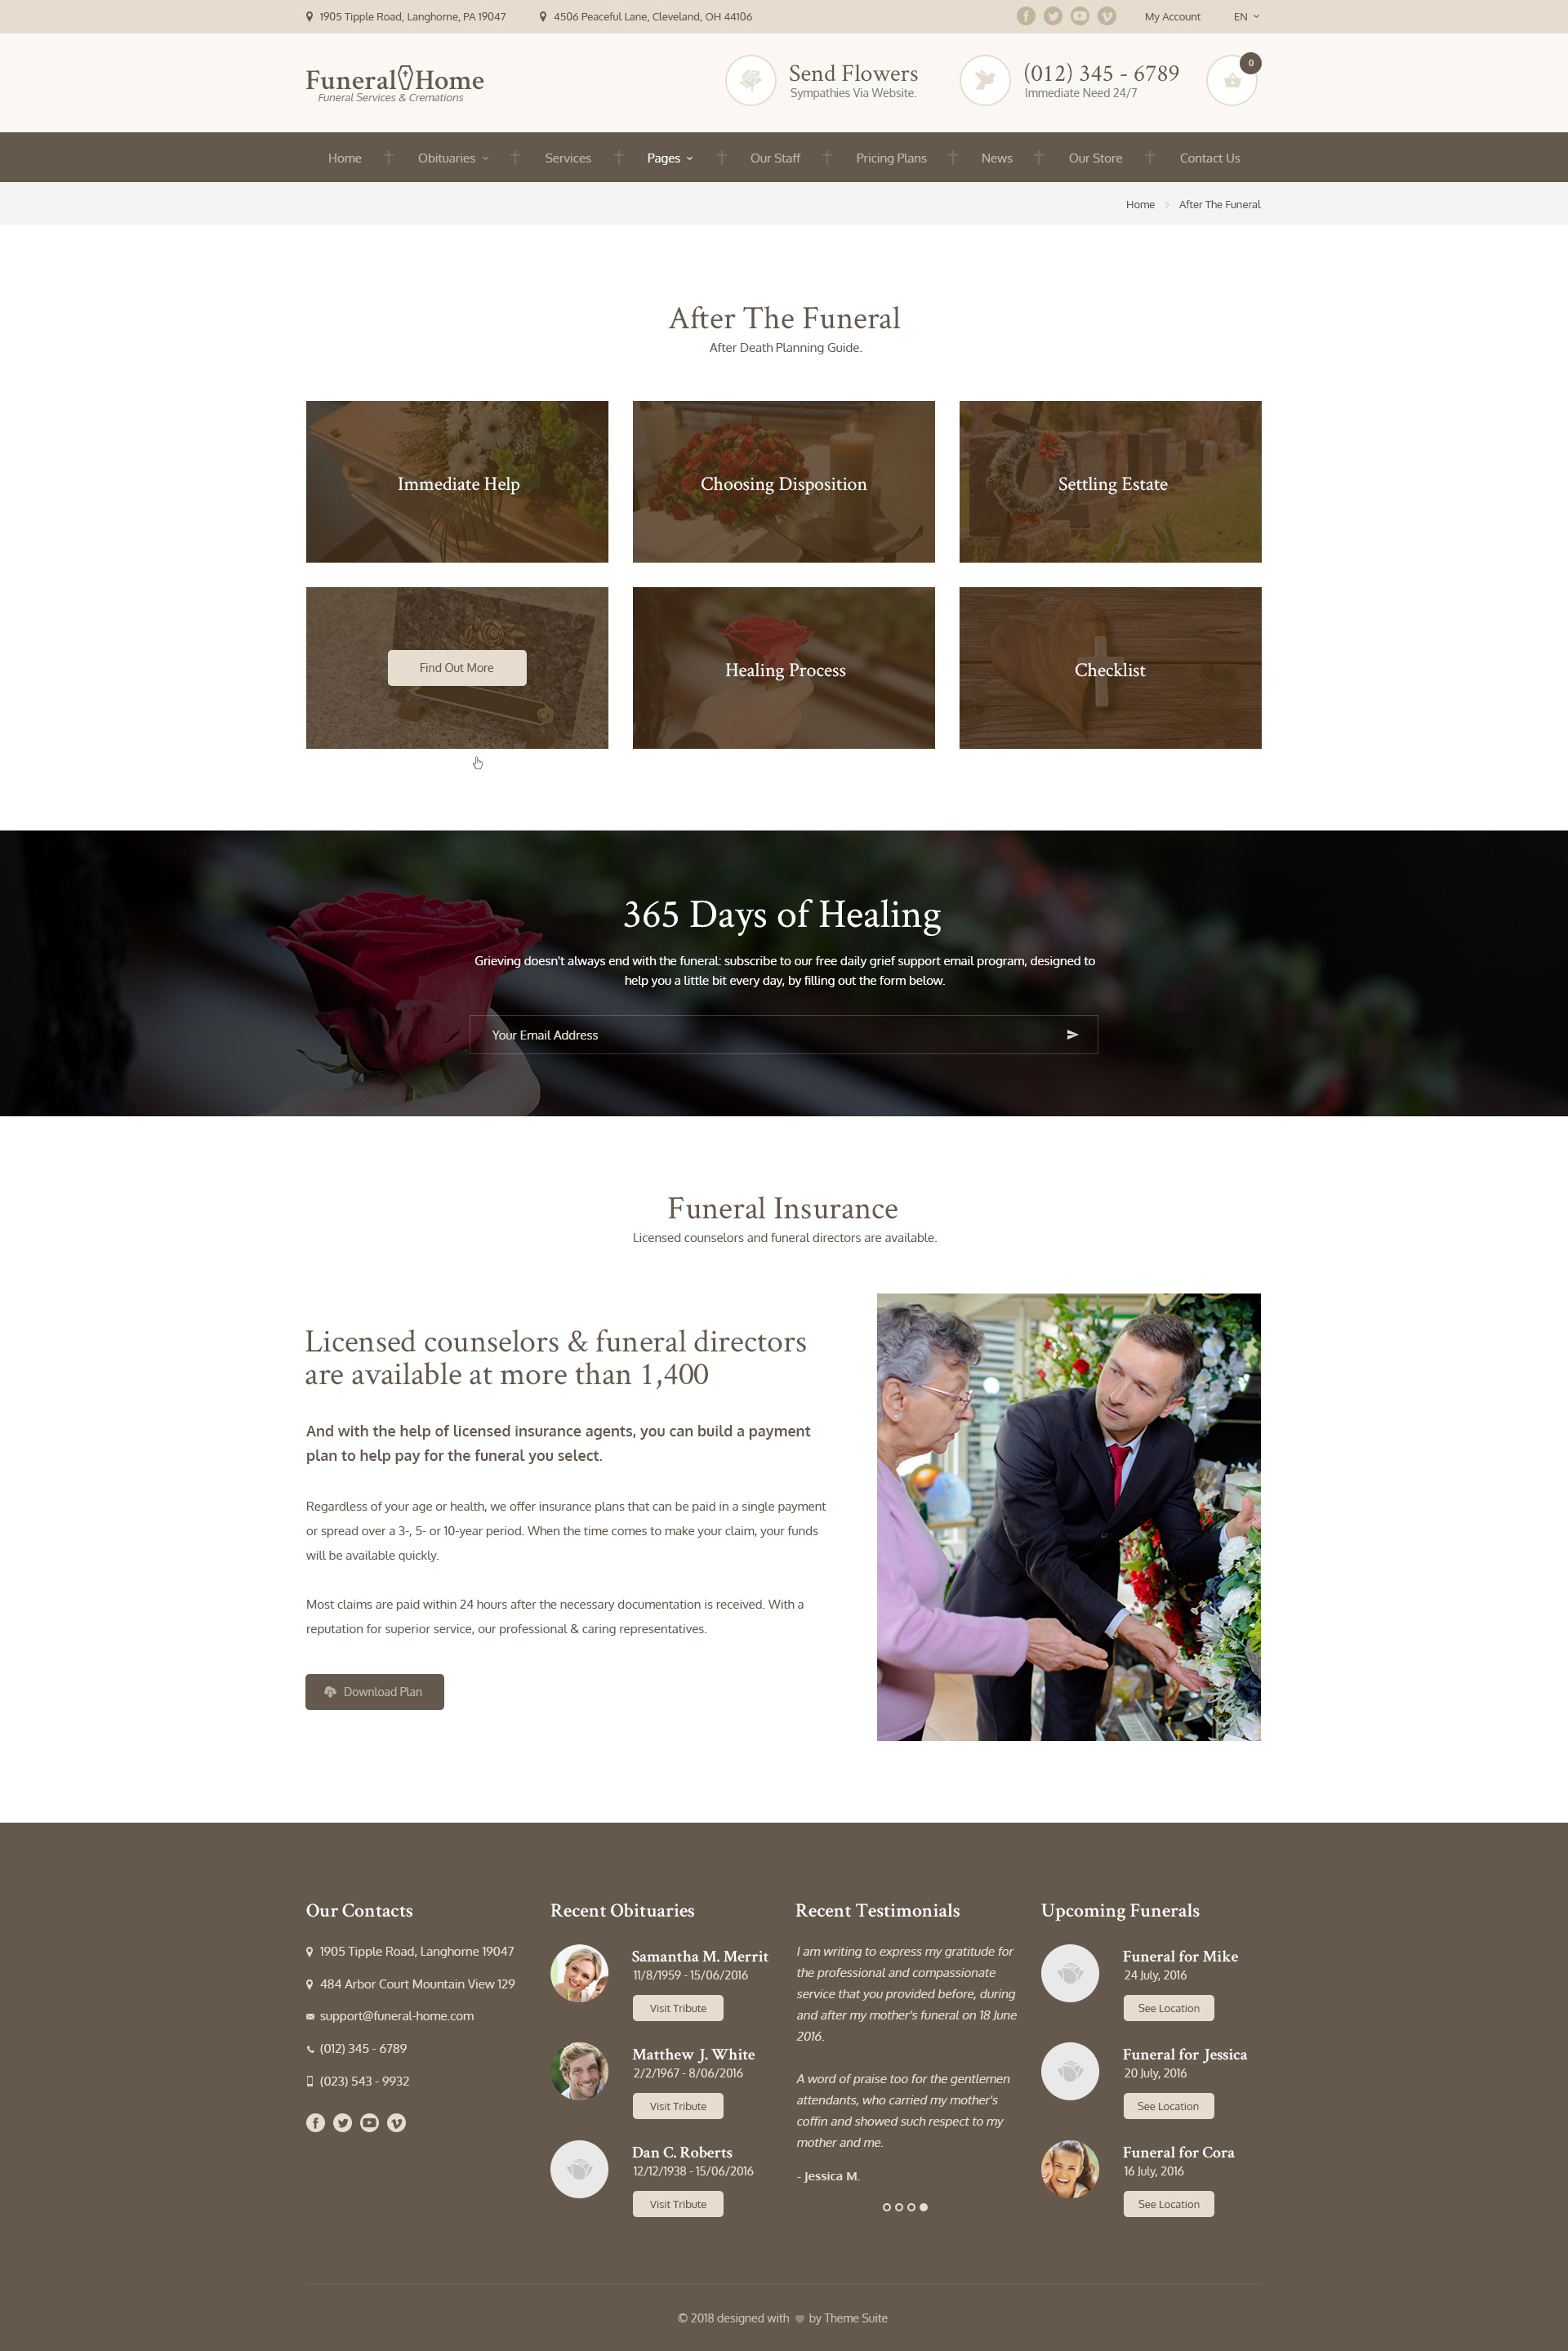 Funeral Home - Funeral Services & Church HTML Template by themesuite